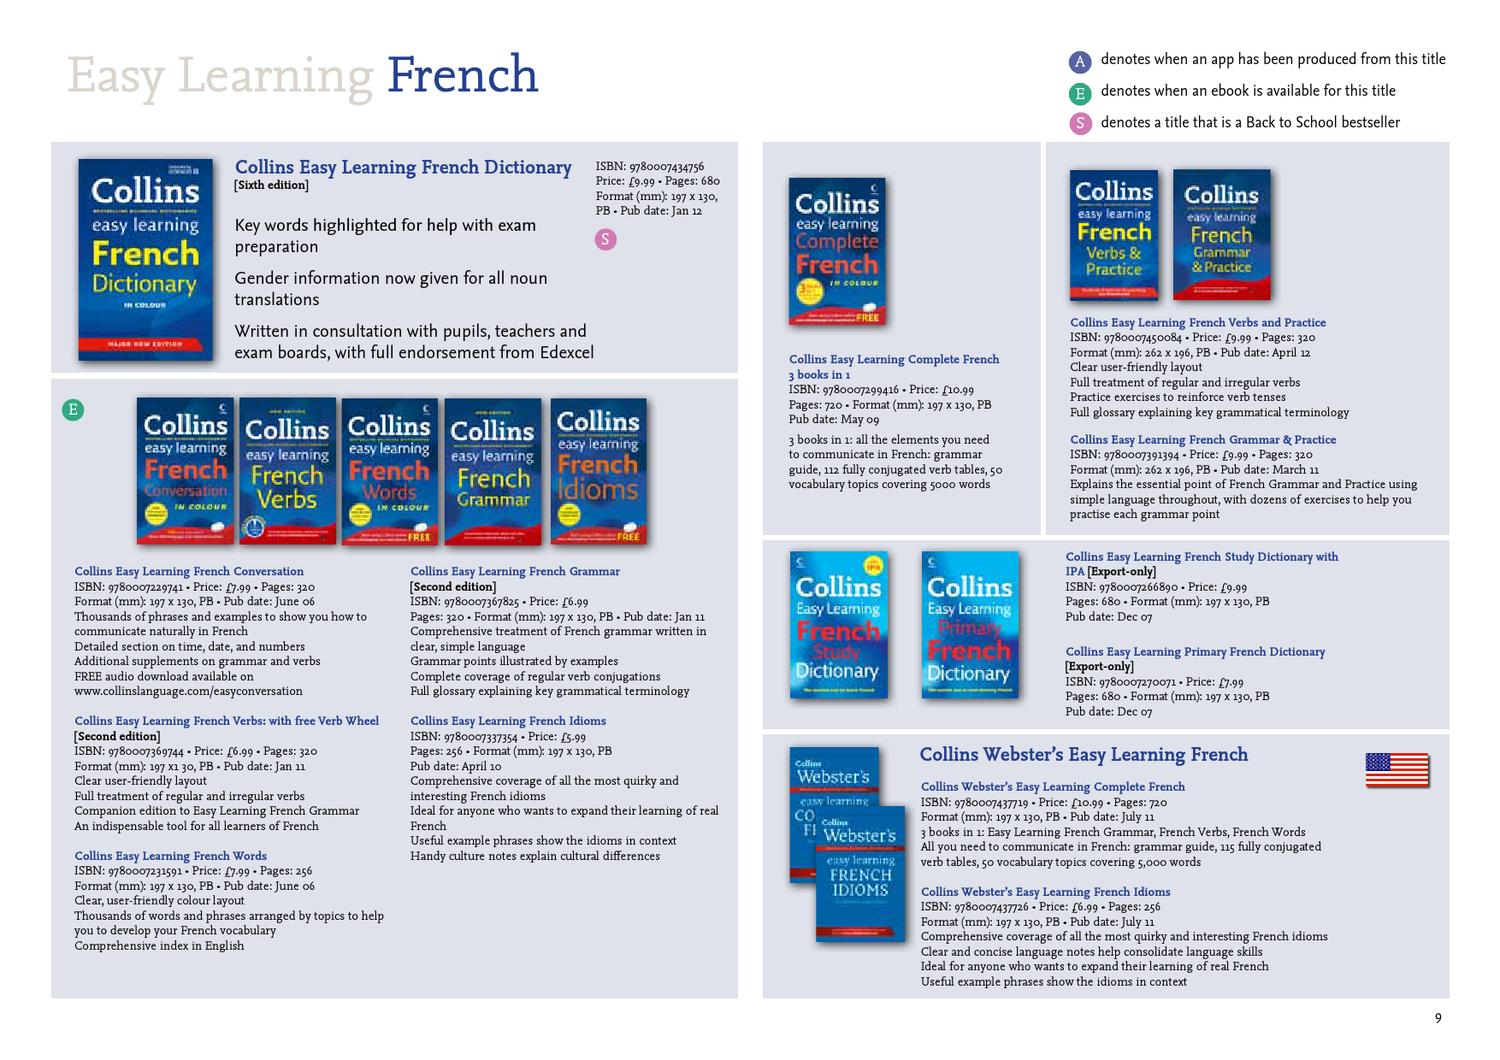 Collins Languages catalogue by Collins Language - issuu